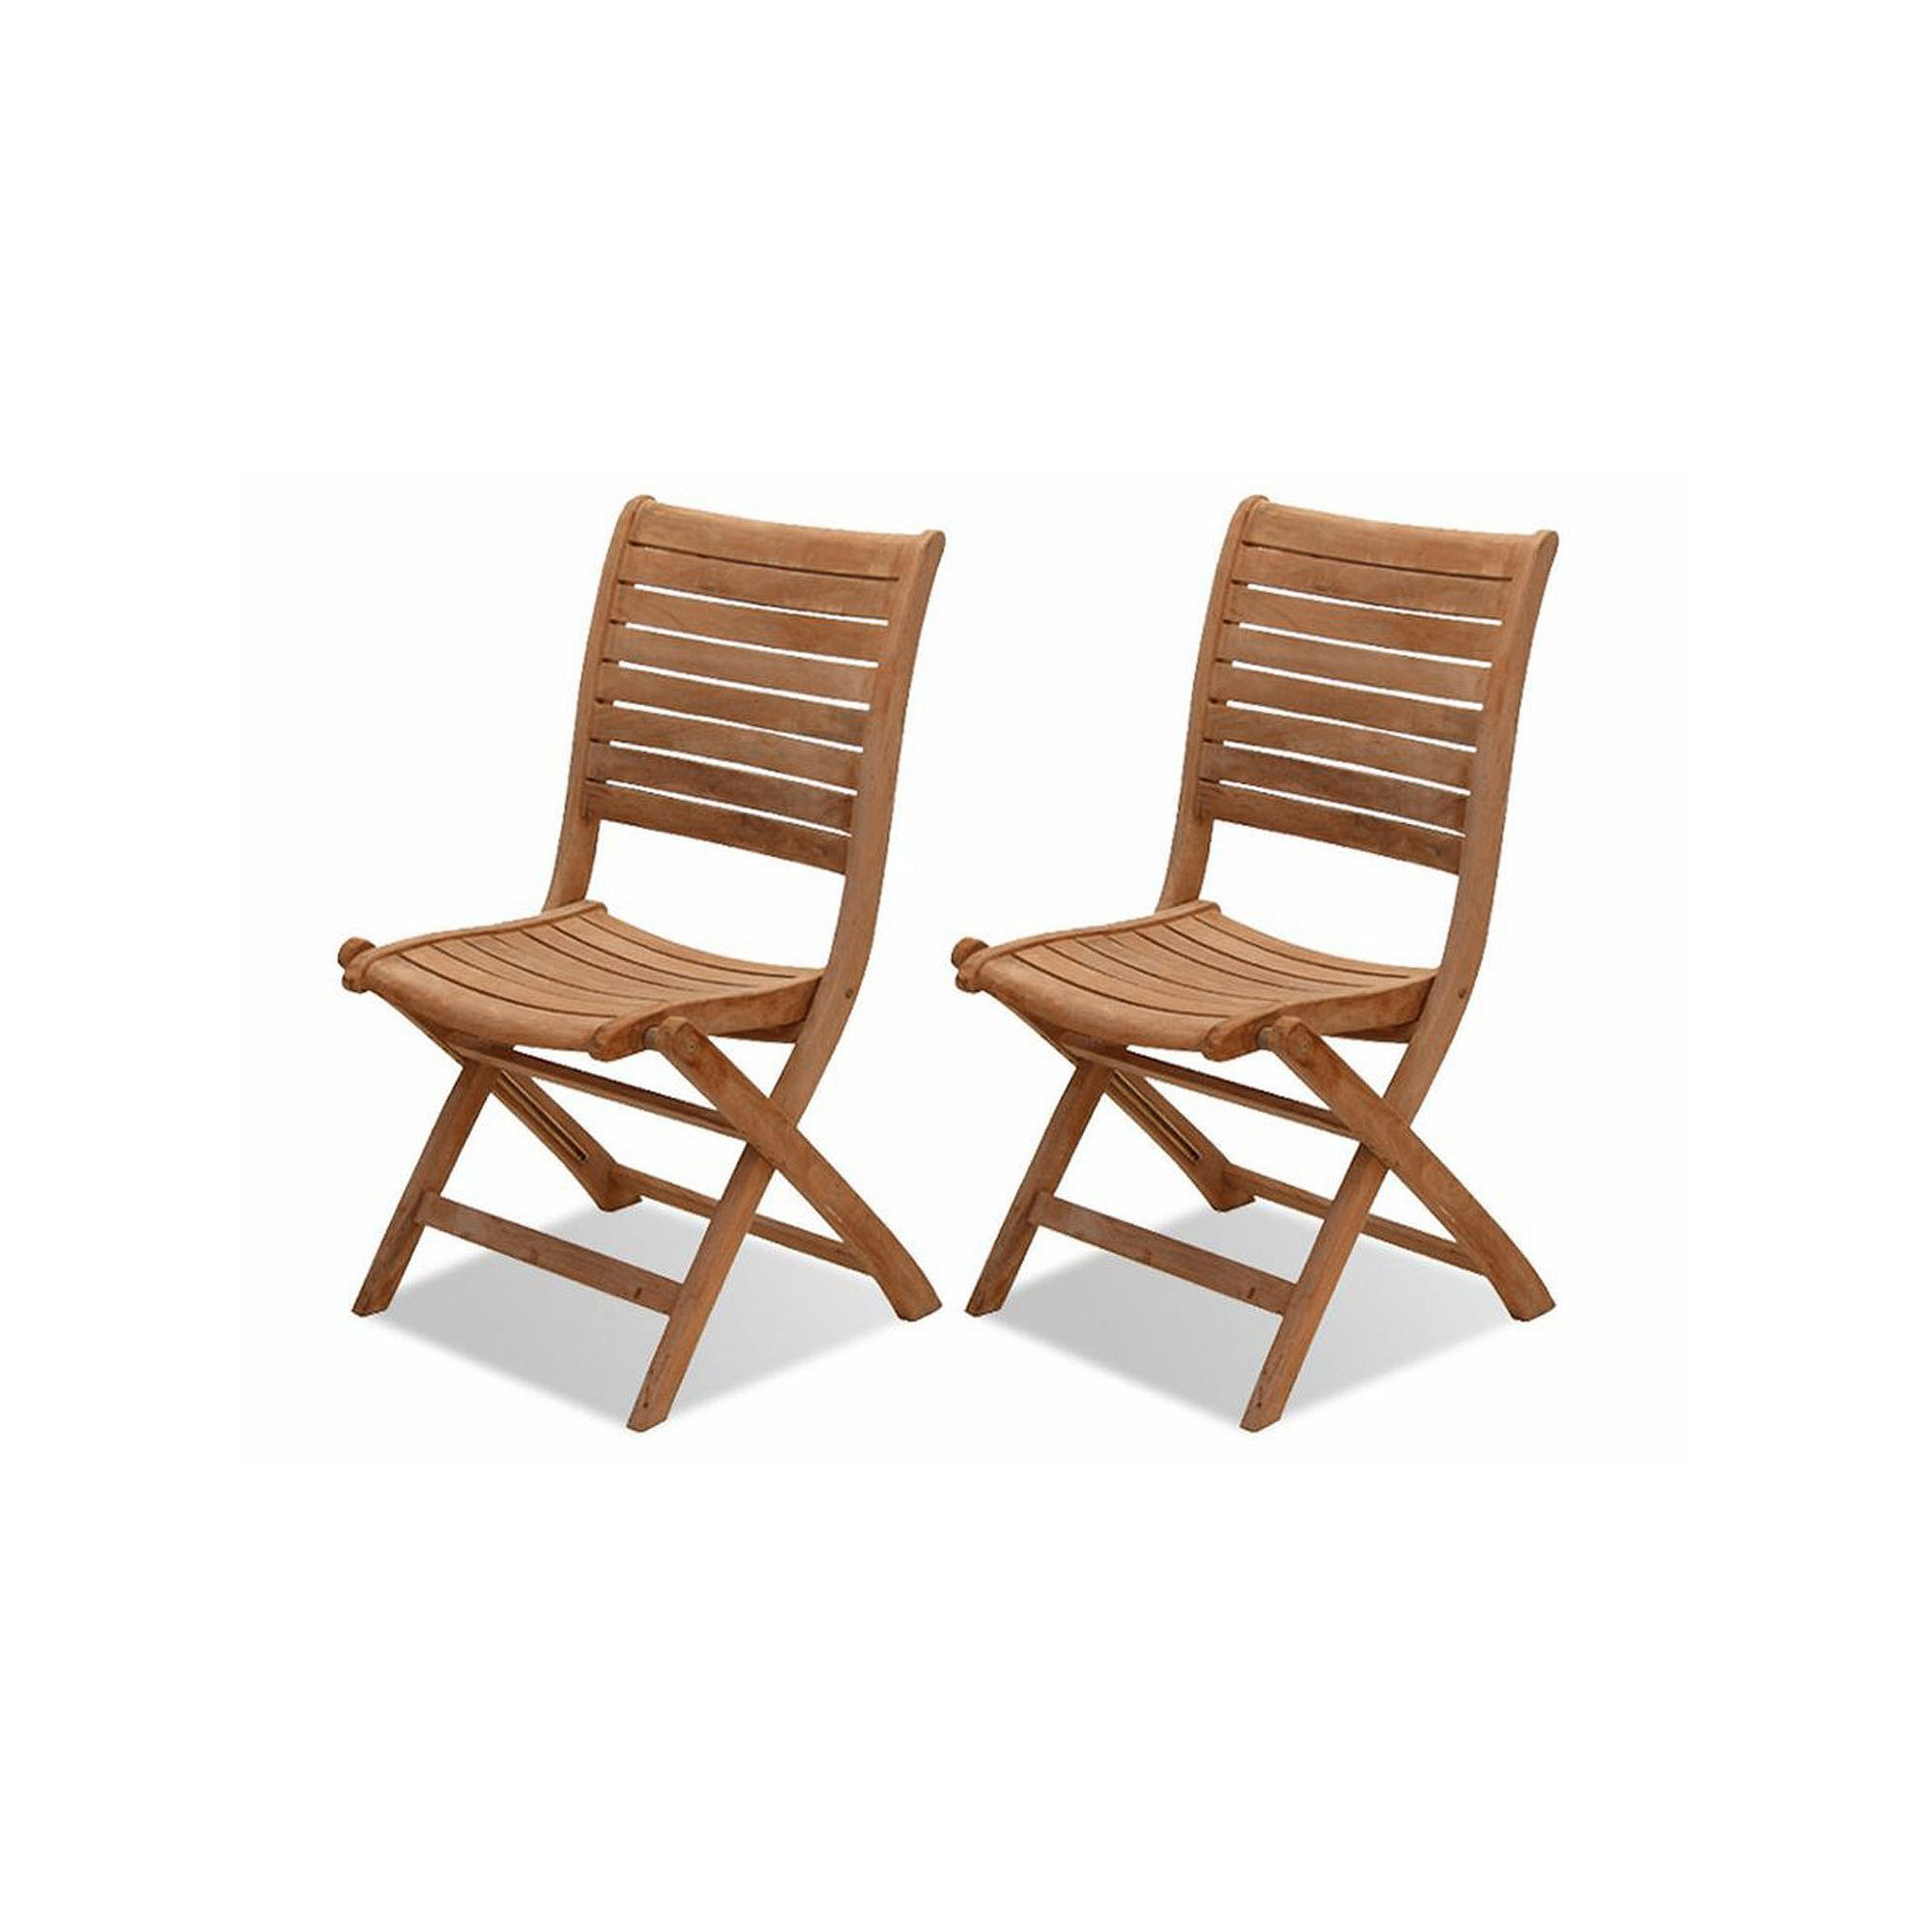 palu furniture. Teak Palu Outdoor Folding Chair Set, Brown Furniture